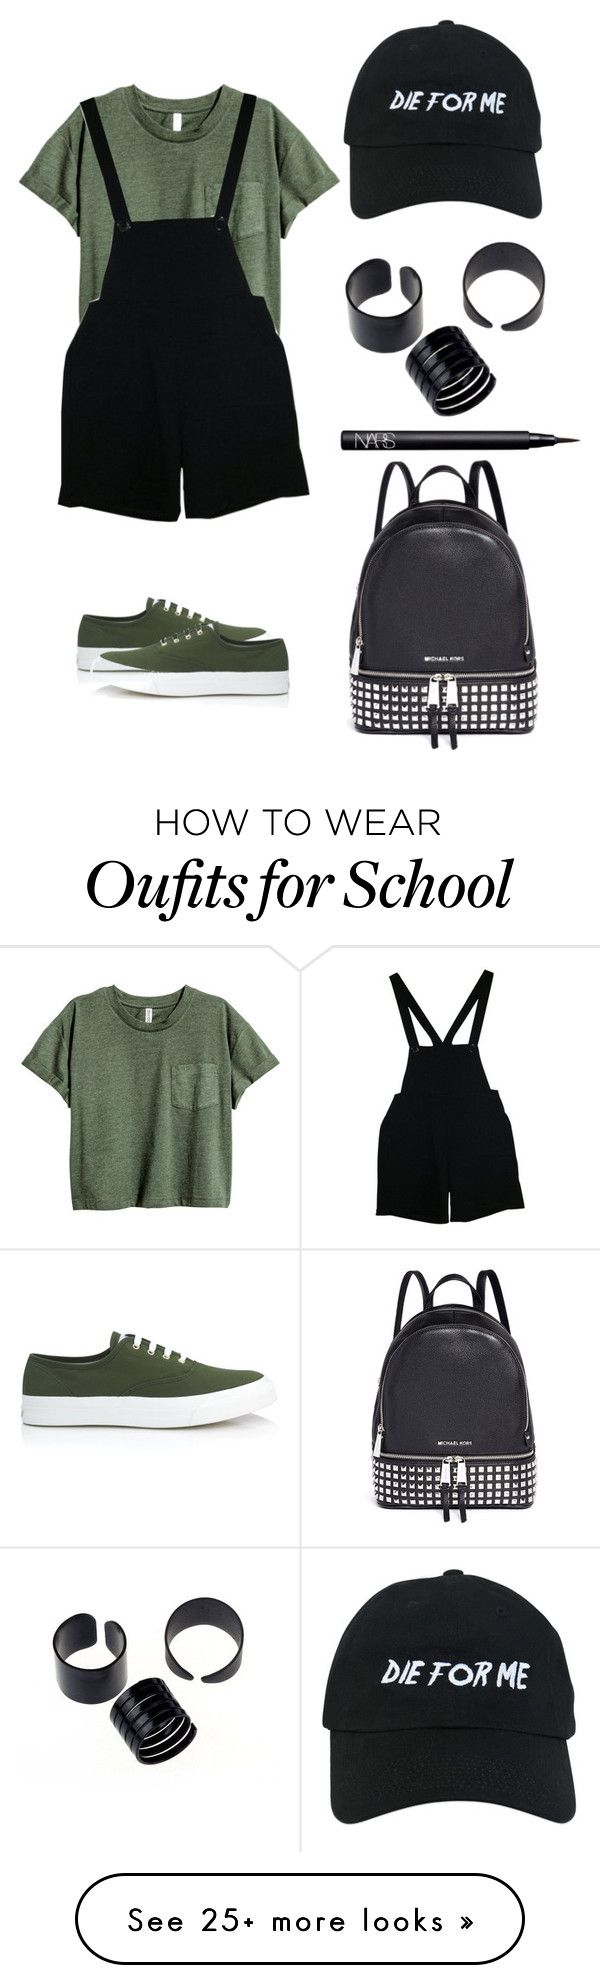 """Back to school 2"" by bridie-oloughlin on Polyvore featuring American Apparel, Maison Kitsuné, Nasaseasons, NARS Cosmetics and Michael Kors"